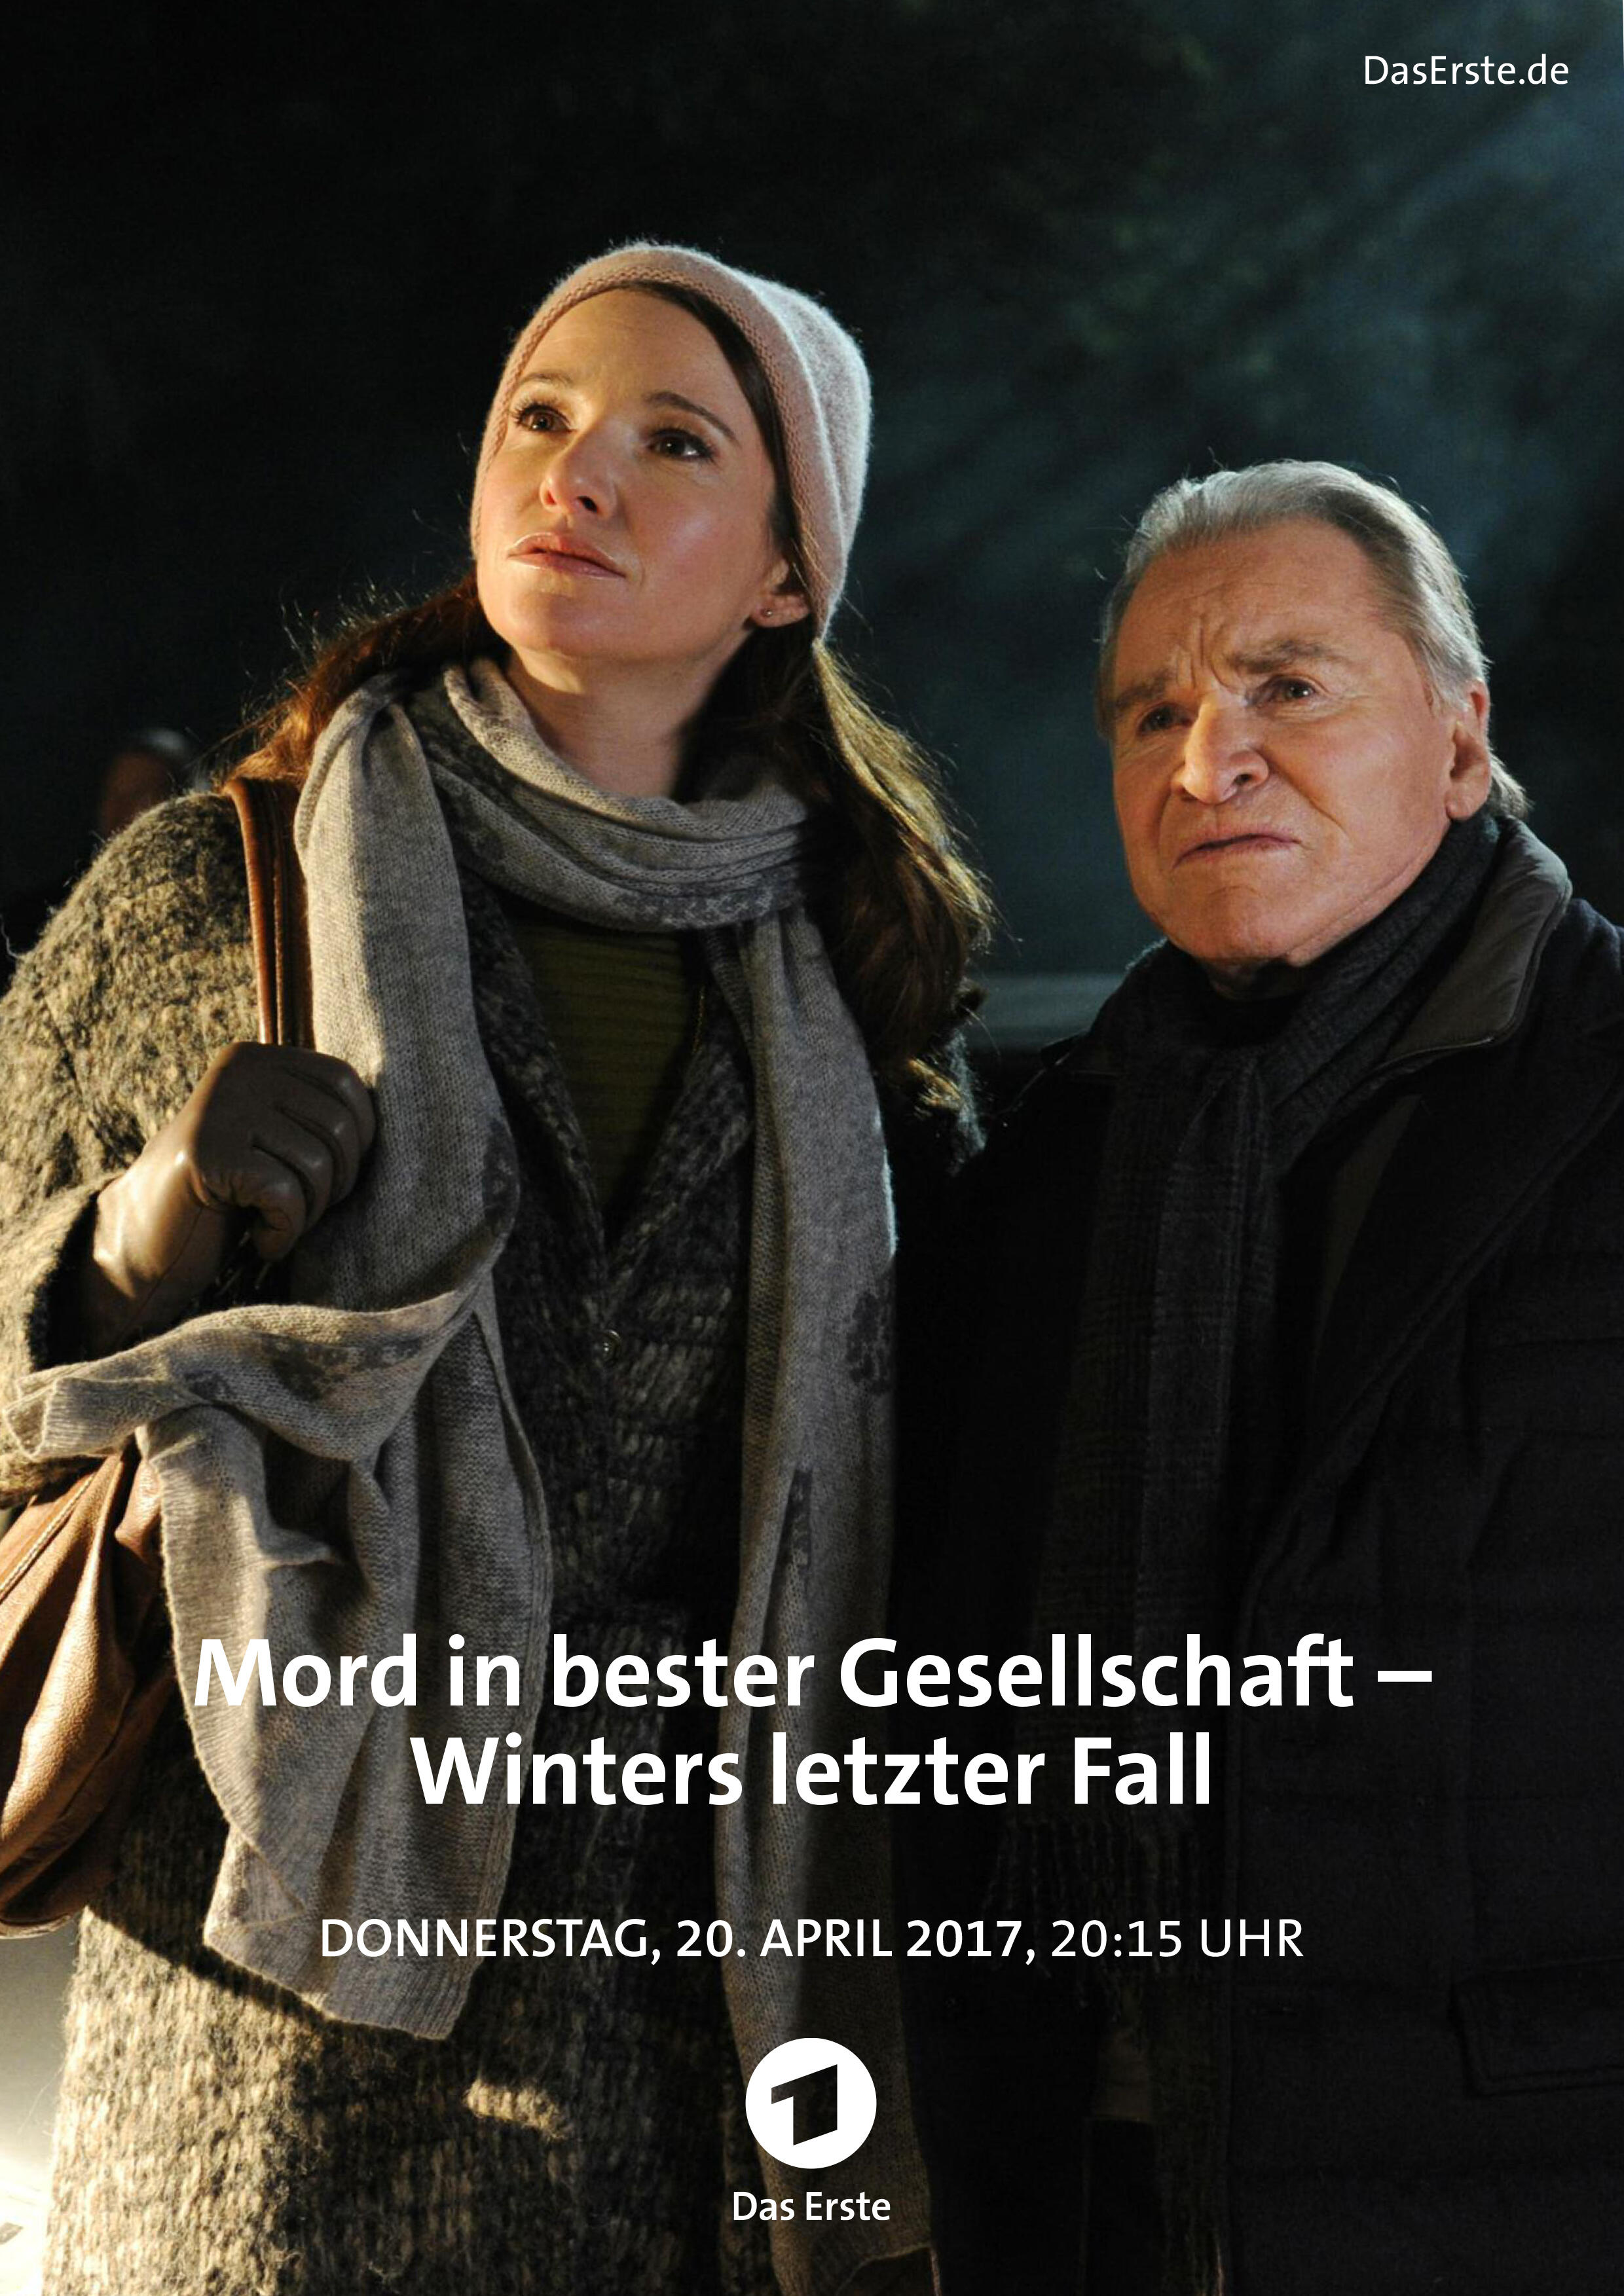 Winters Letzter Fall